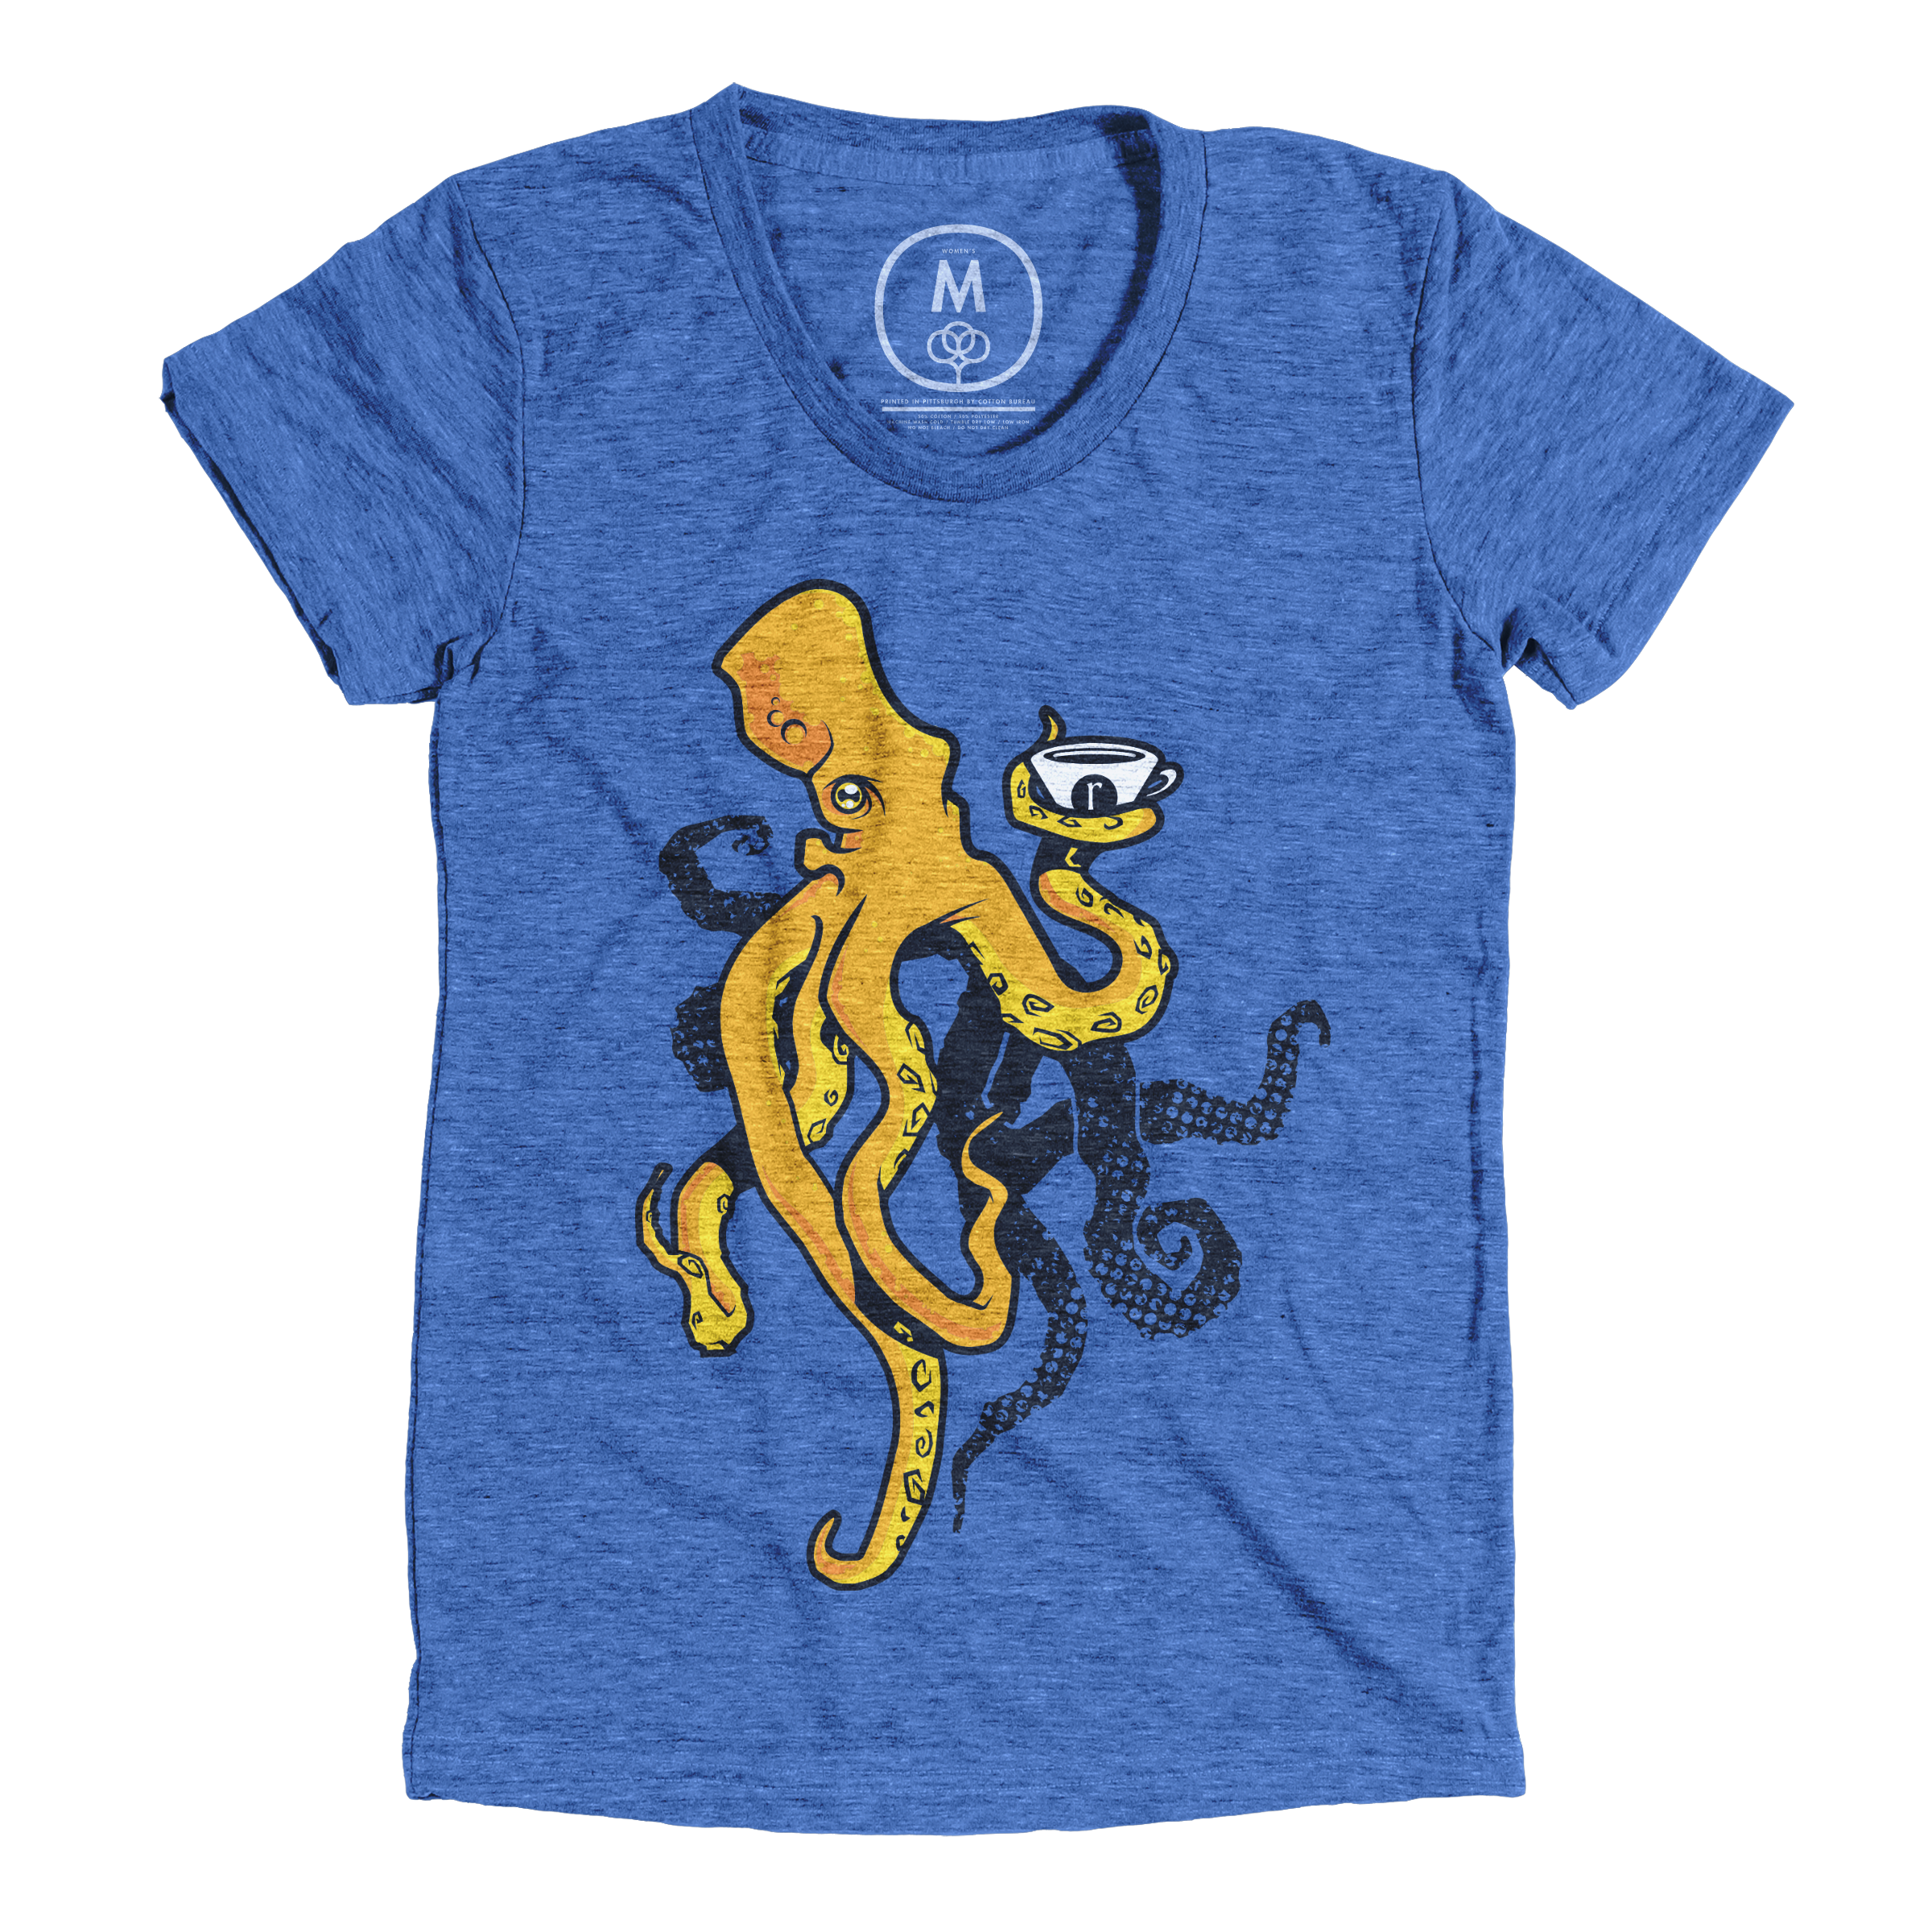 Kyle the Octopus Vintage Royal (Women's)